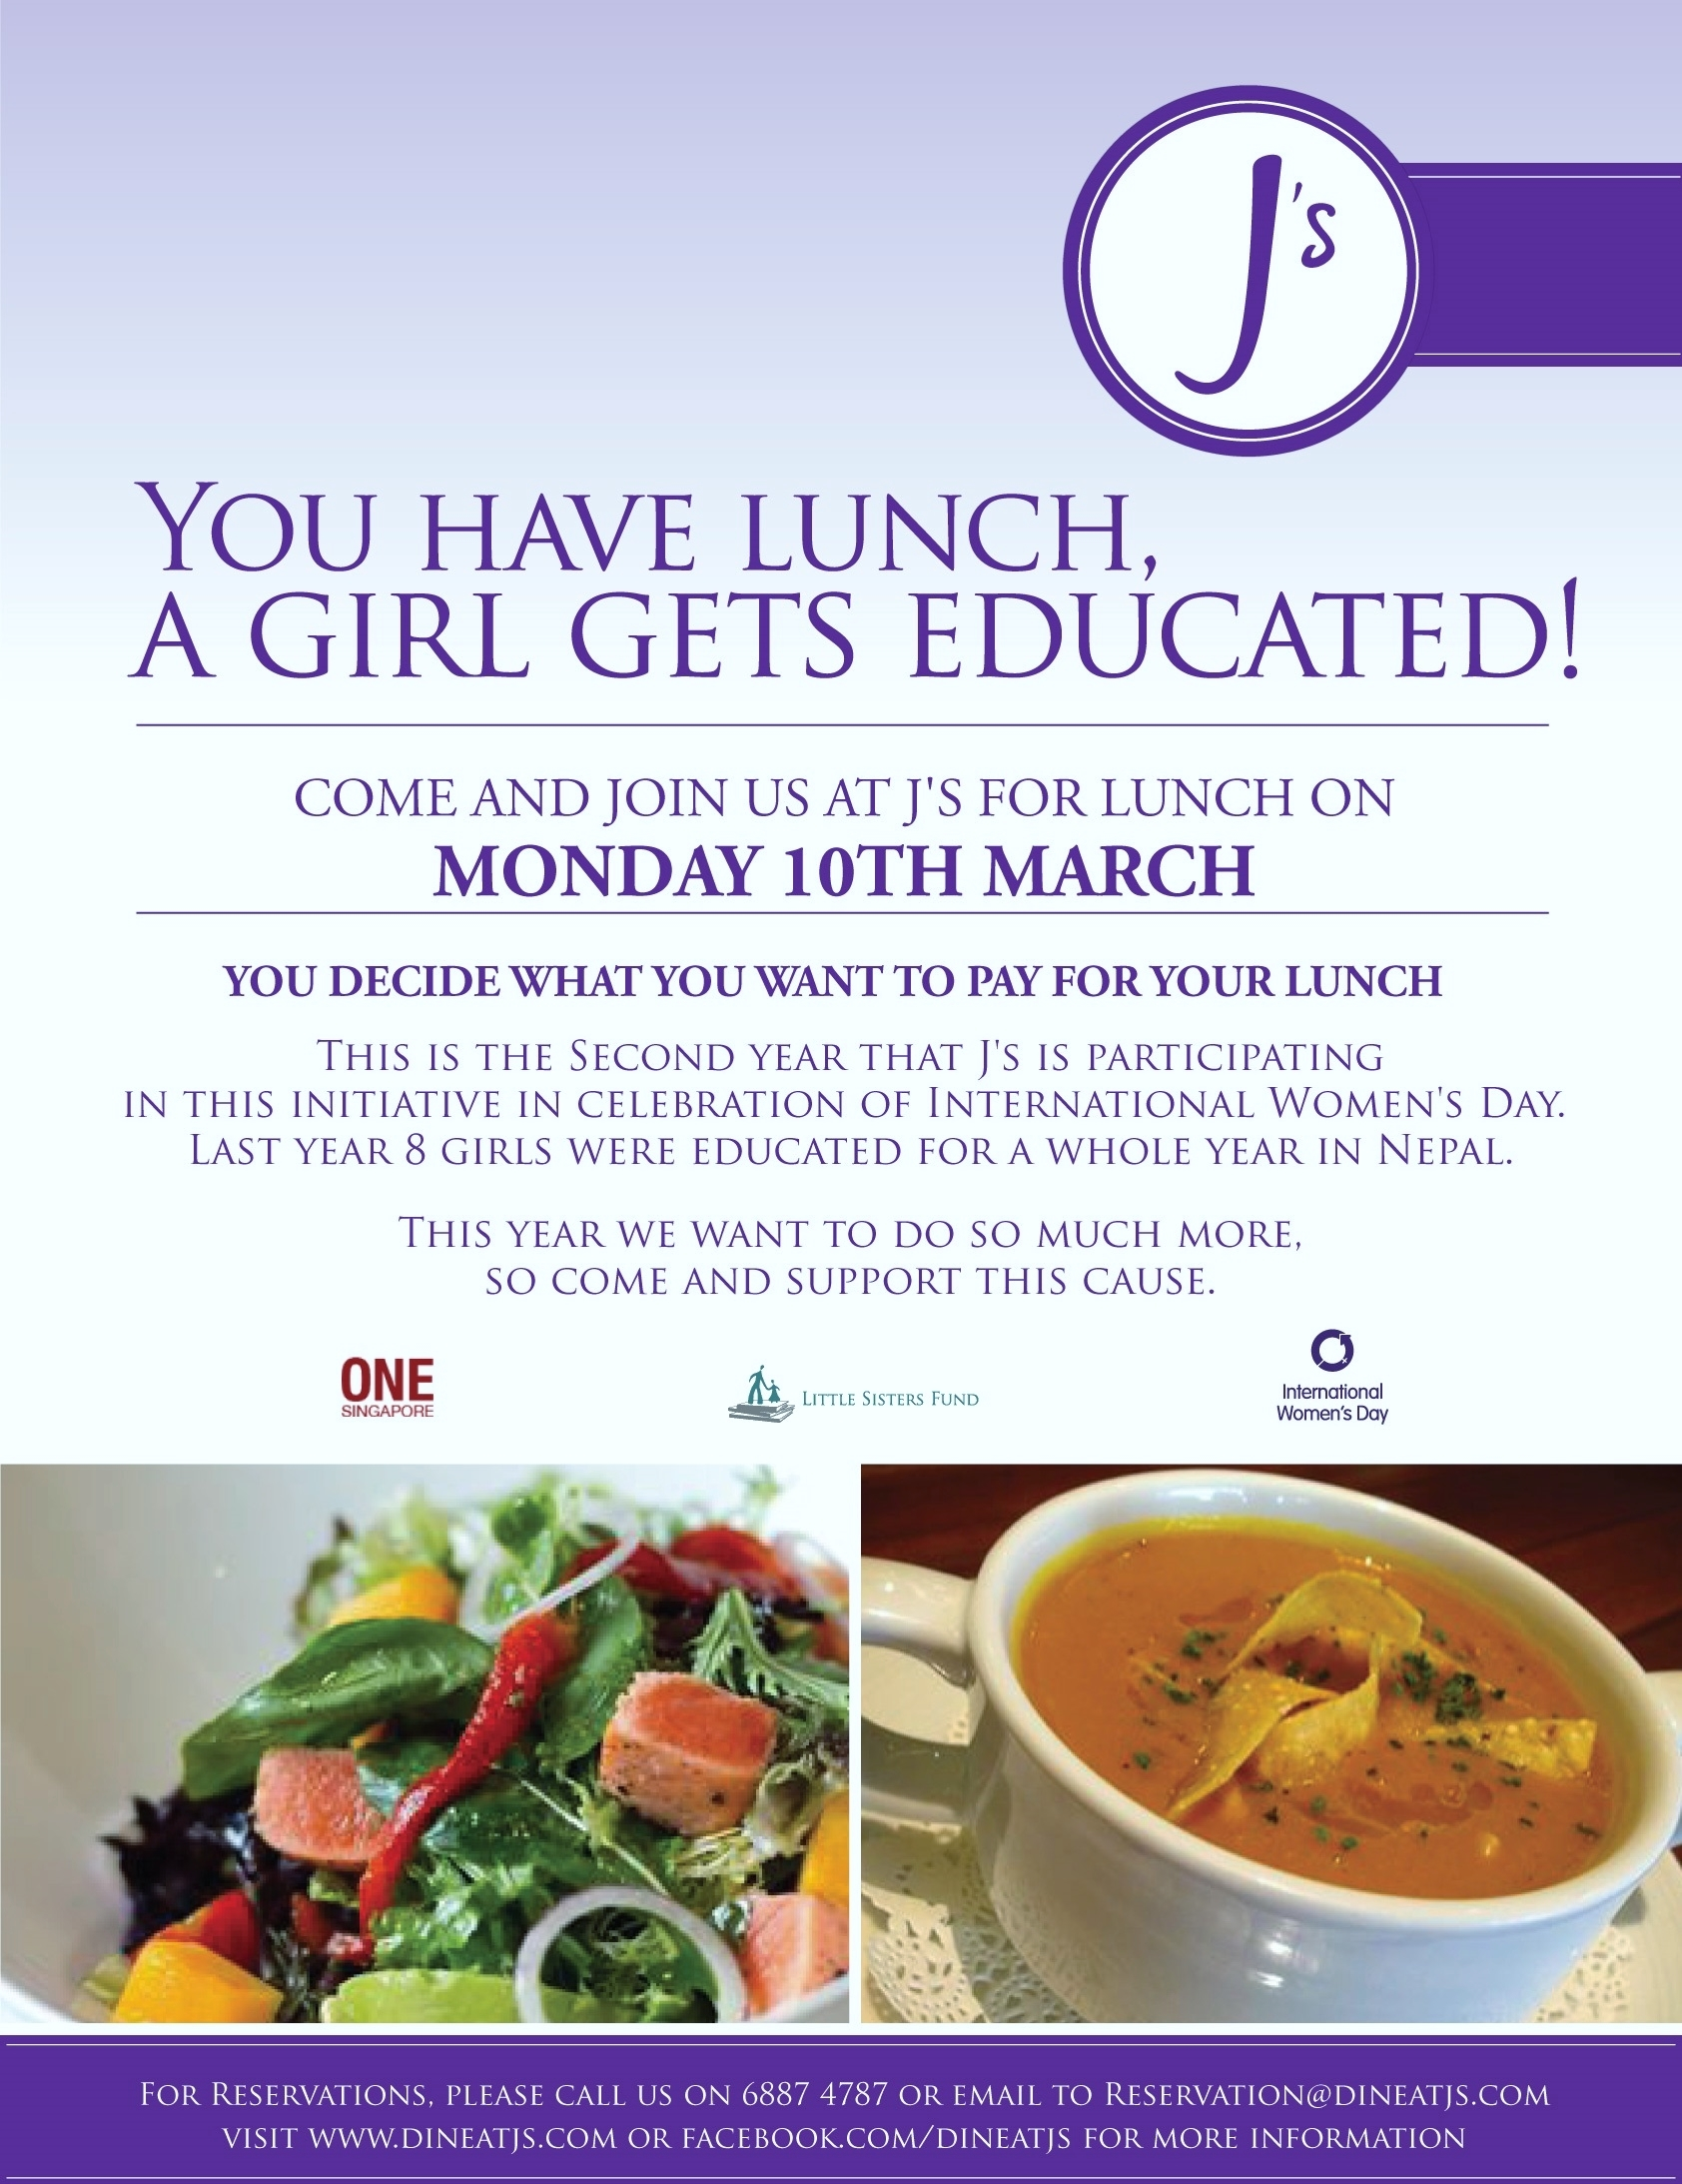 Celebrate Int'l Women's Day with a Great Lunch that Sponsors a Girl's Education